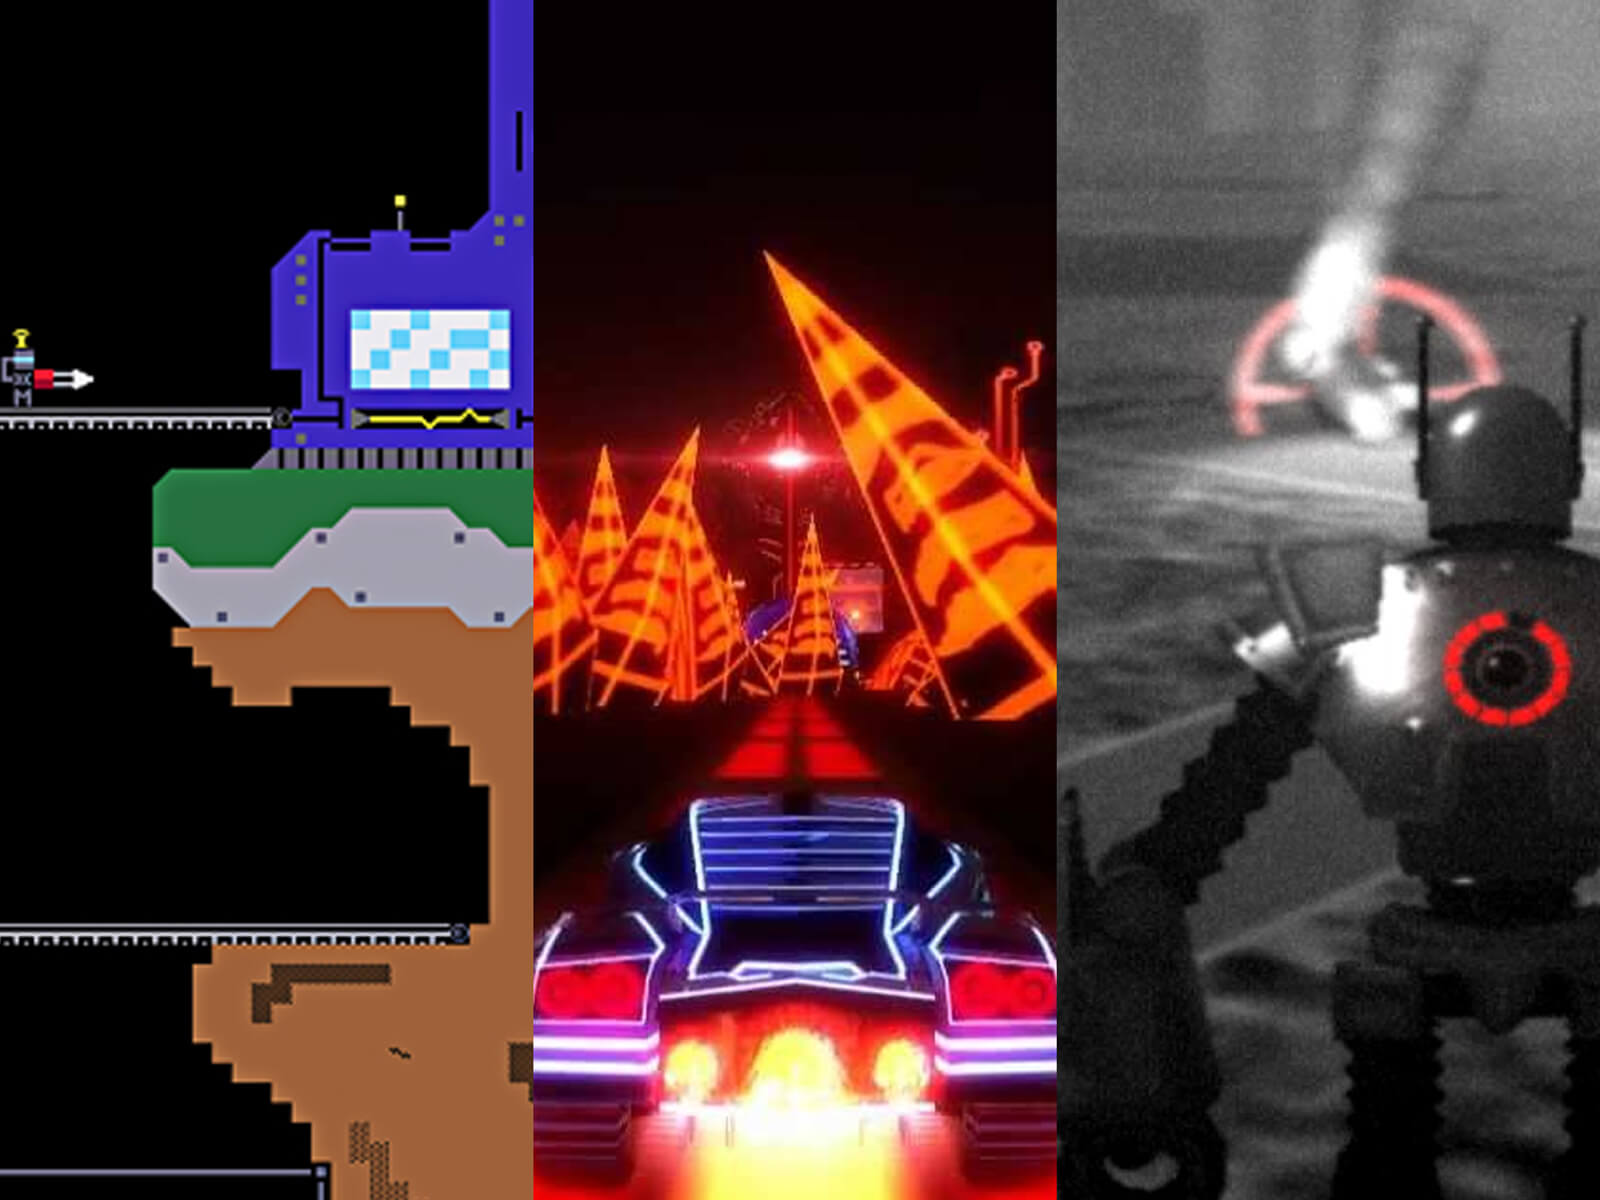 A mashup of screenshots from seven DigiPen games depicting a raindrop creature, a neon race car, a chained man, and more.